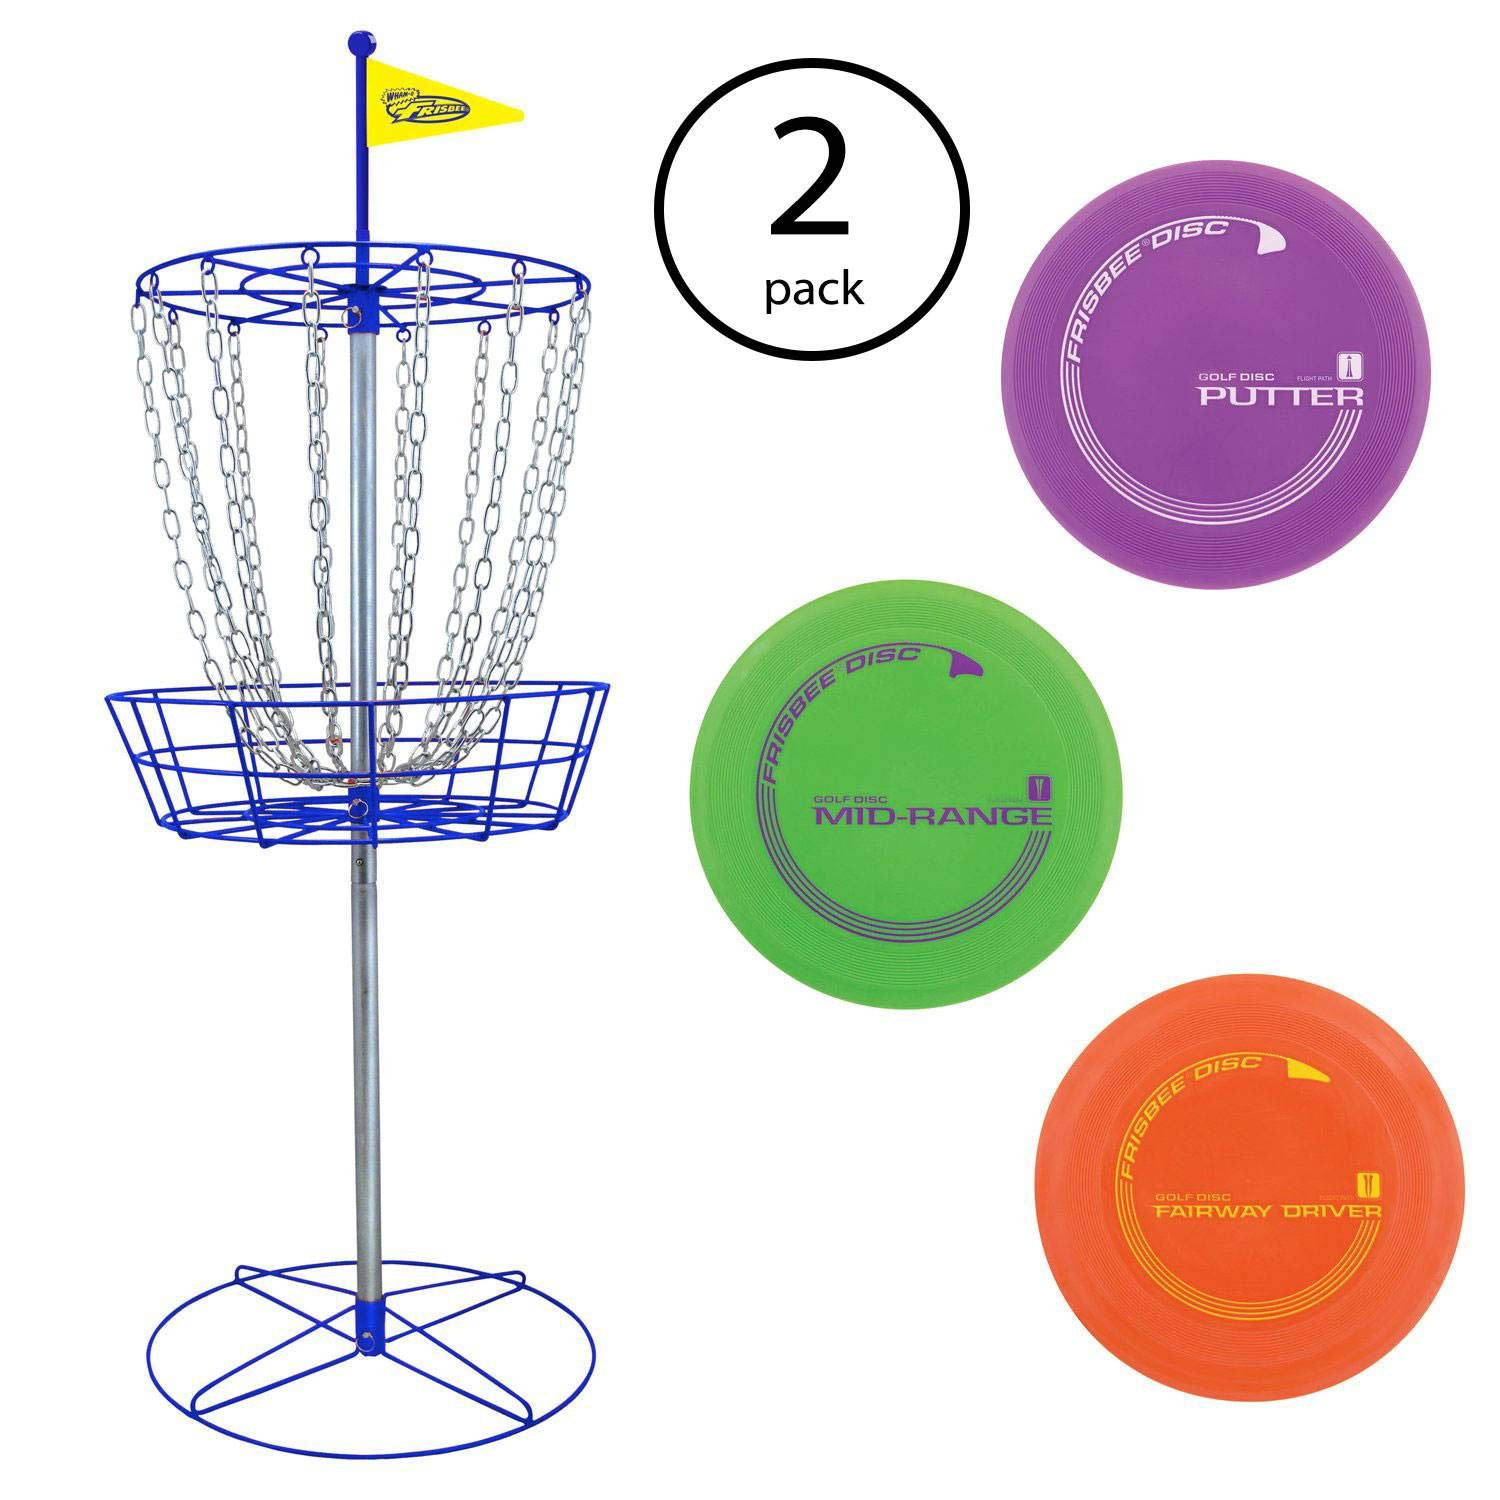 Wham-O Official Frisbee Disc Golf Set with 3 Discs and Blue Target (2 Pack) by Wham-O